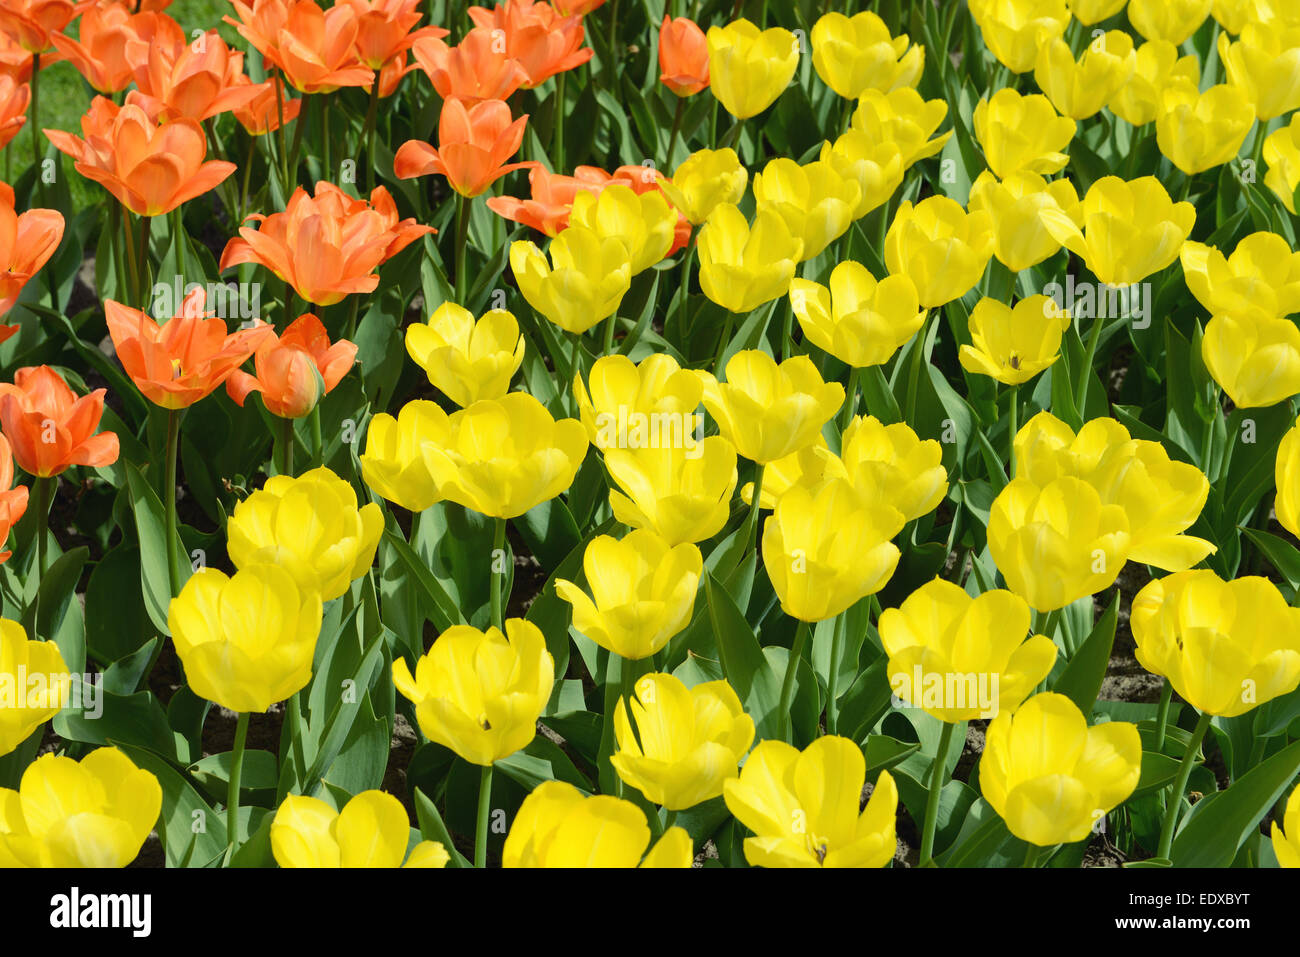 yellow tulips on flowerbed.cross processing - Stock Image